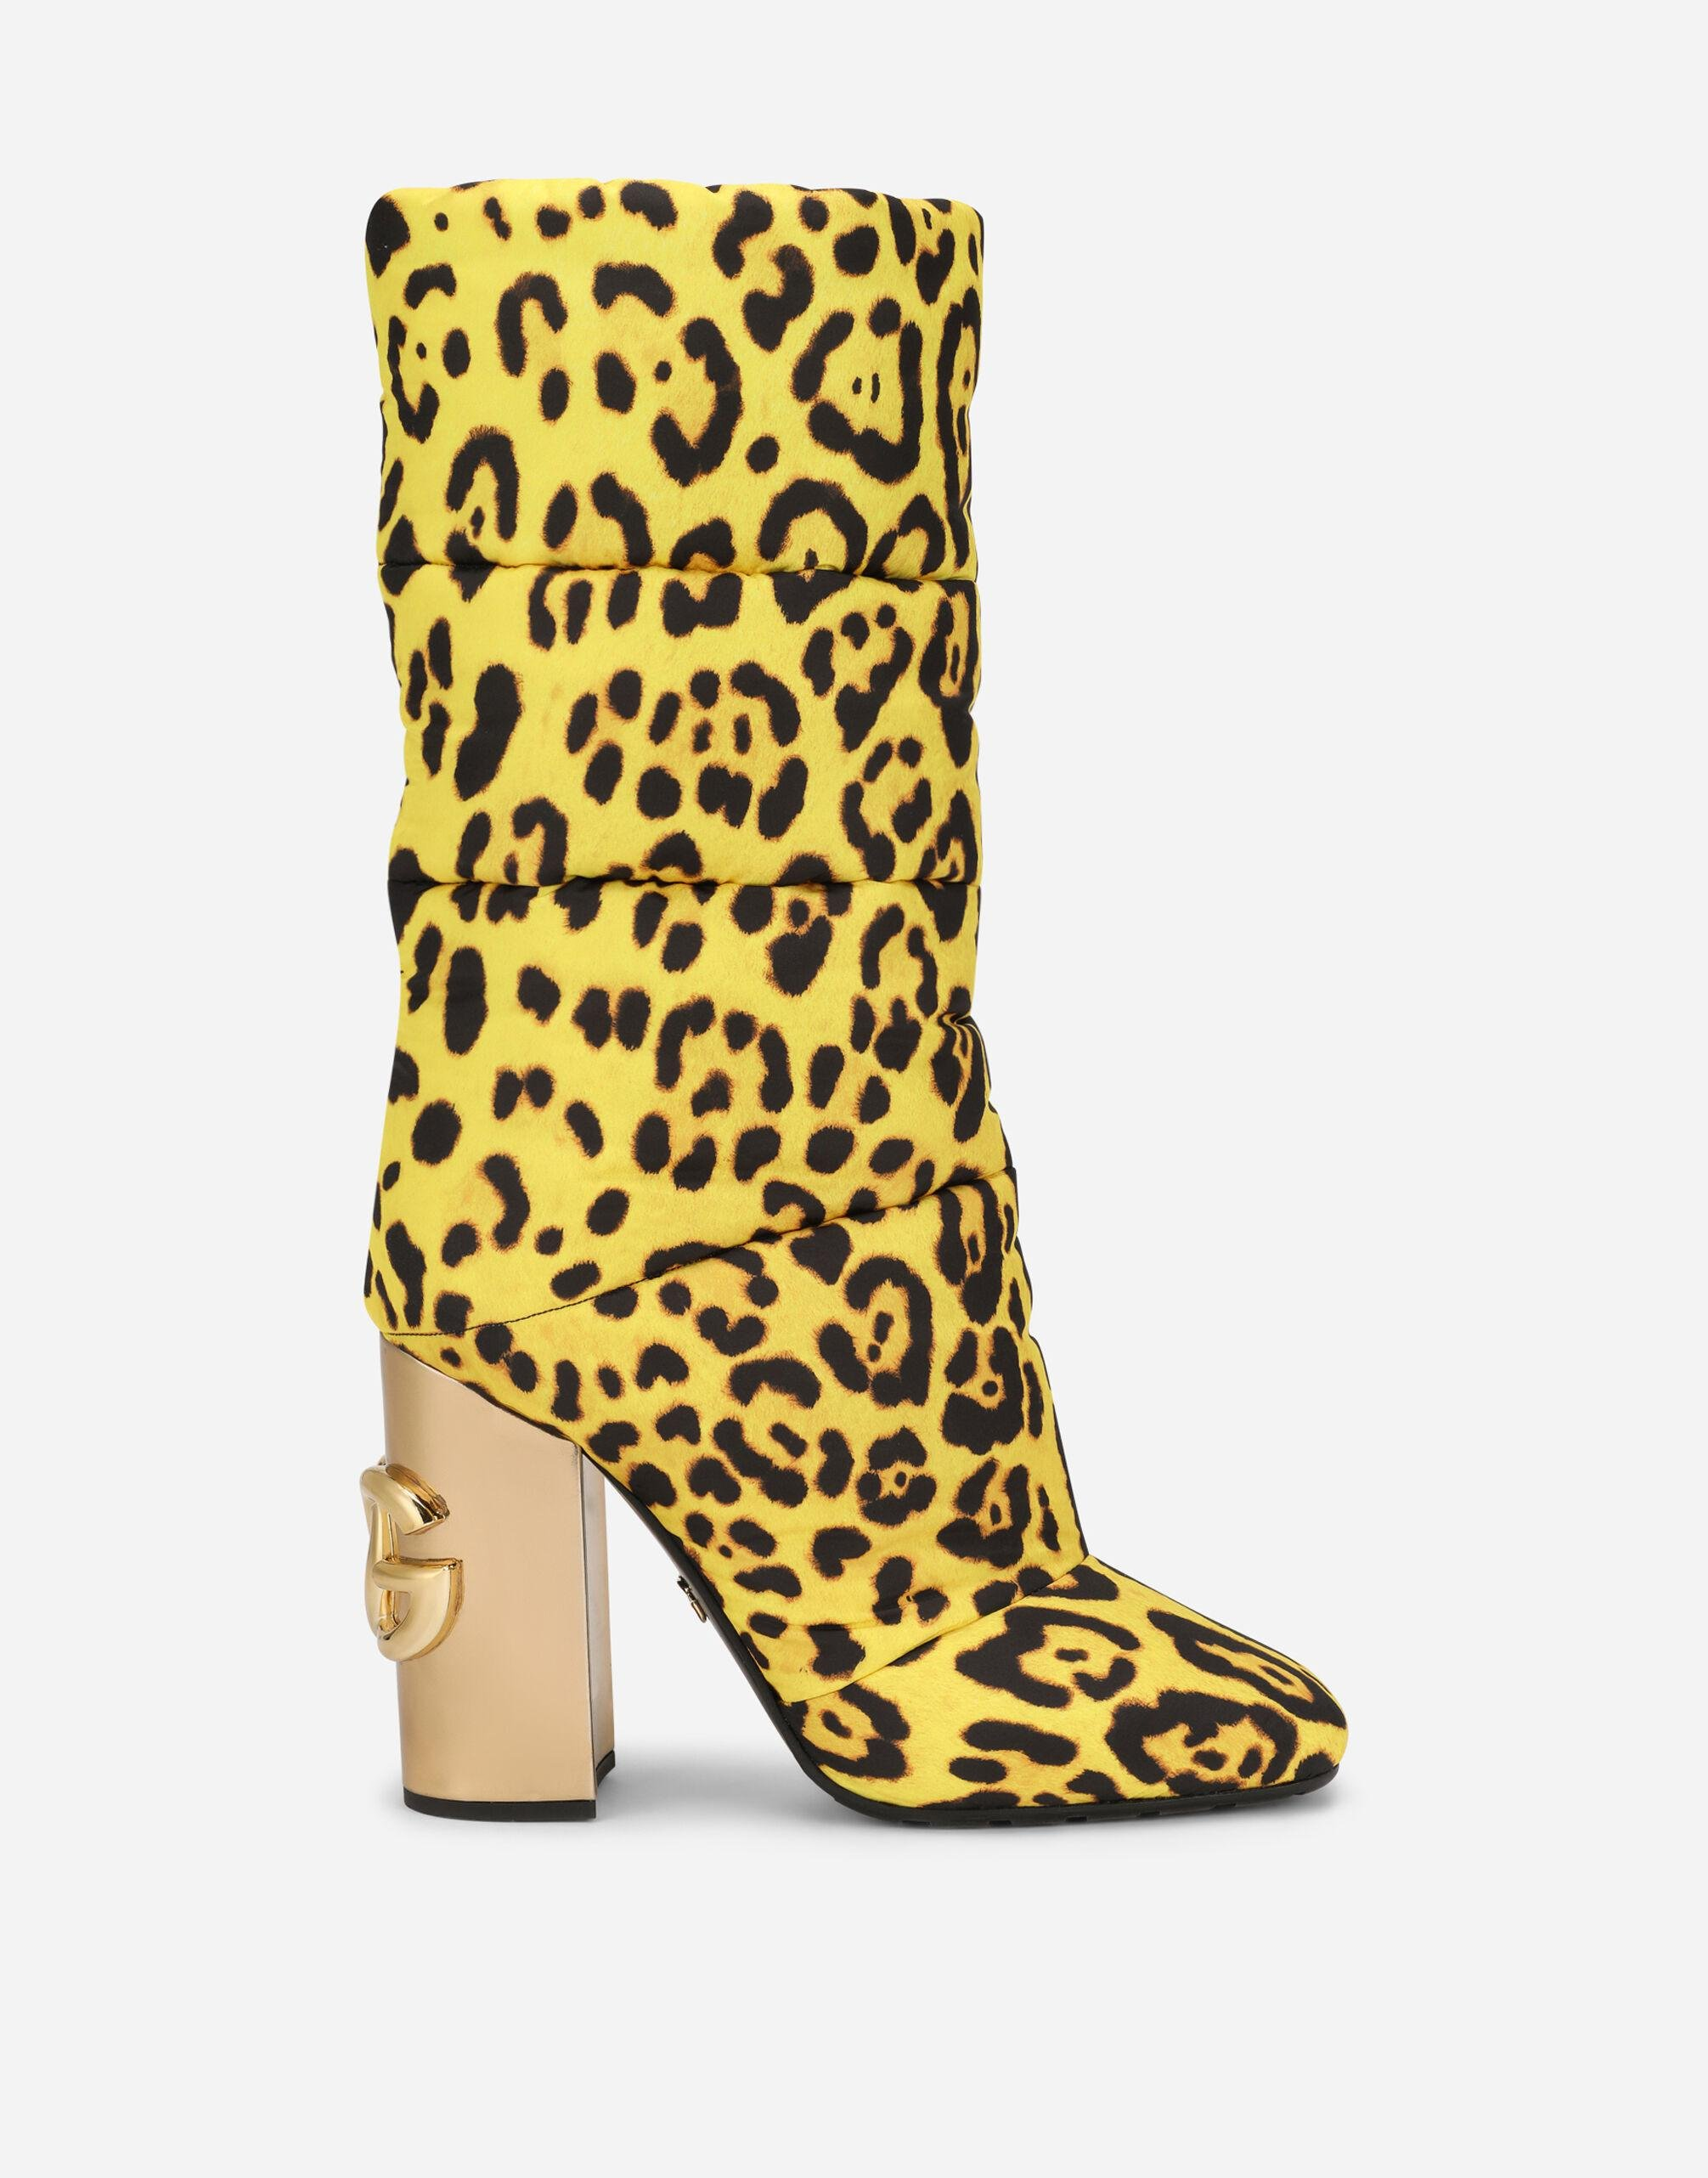 Leopard-print quilted nylon boots with yellow base